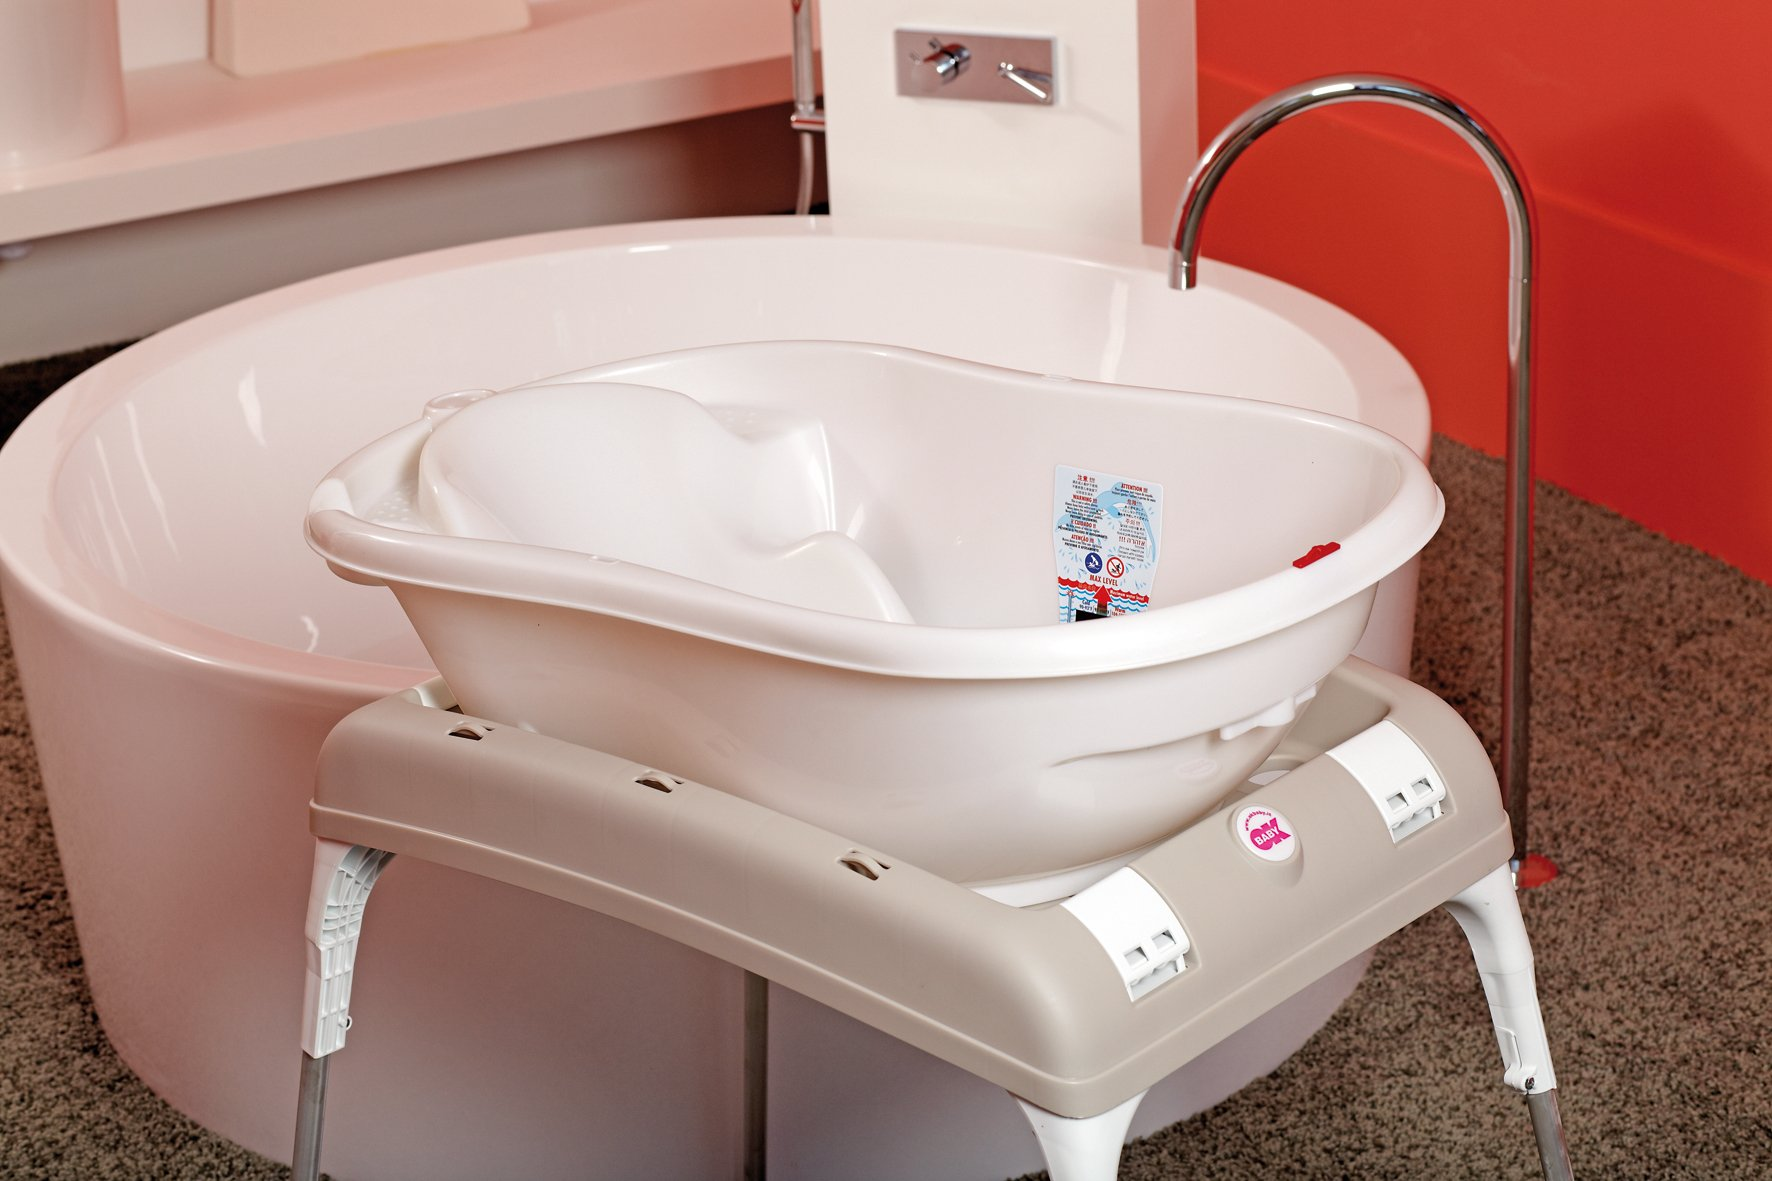 OKBaby Onda 3-in-1 Multi-Stage Baby Bath